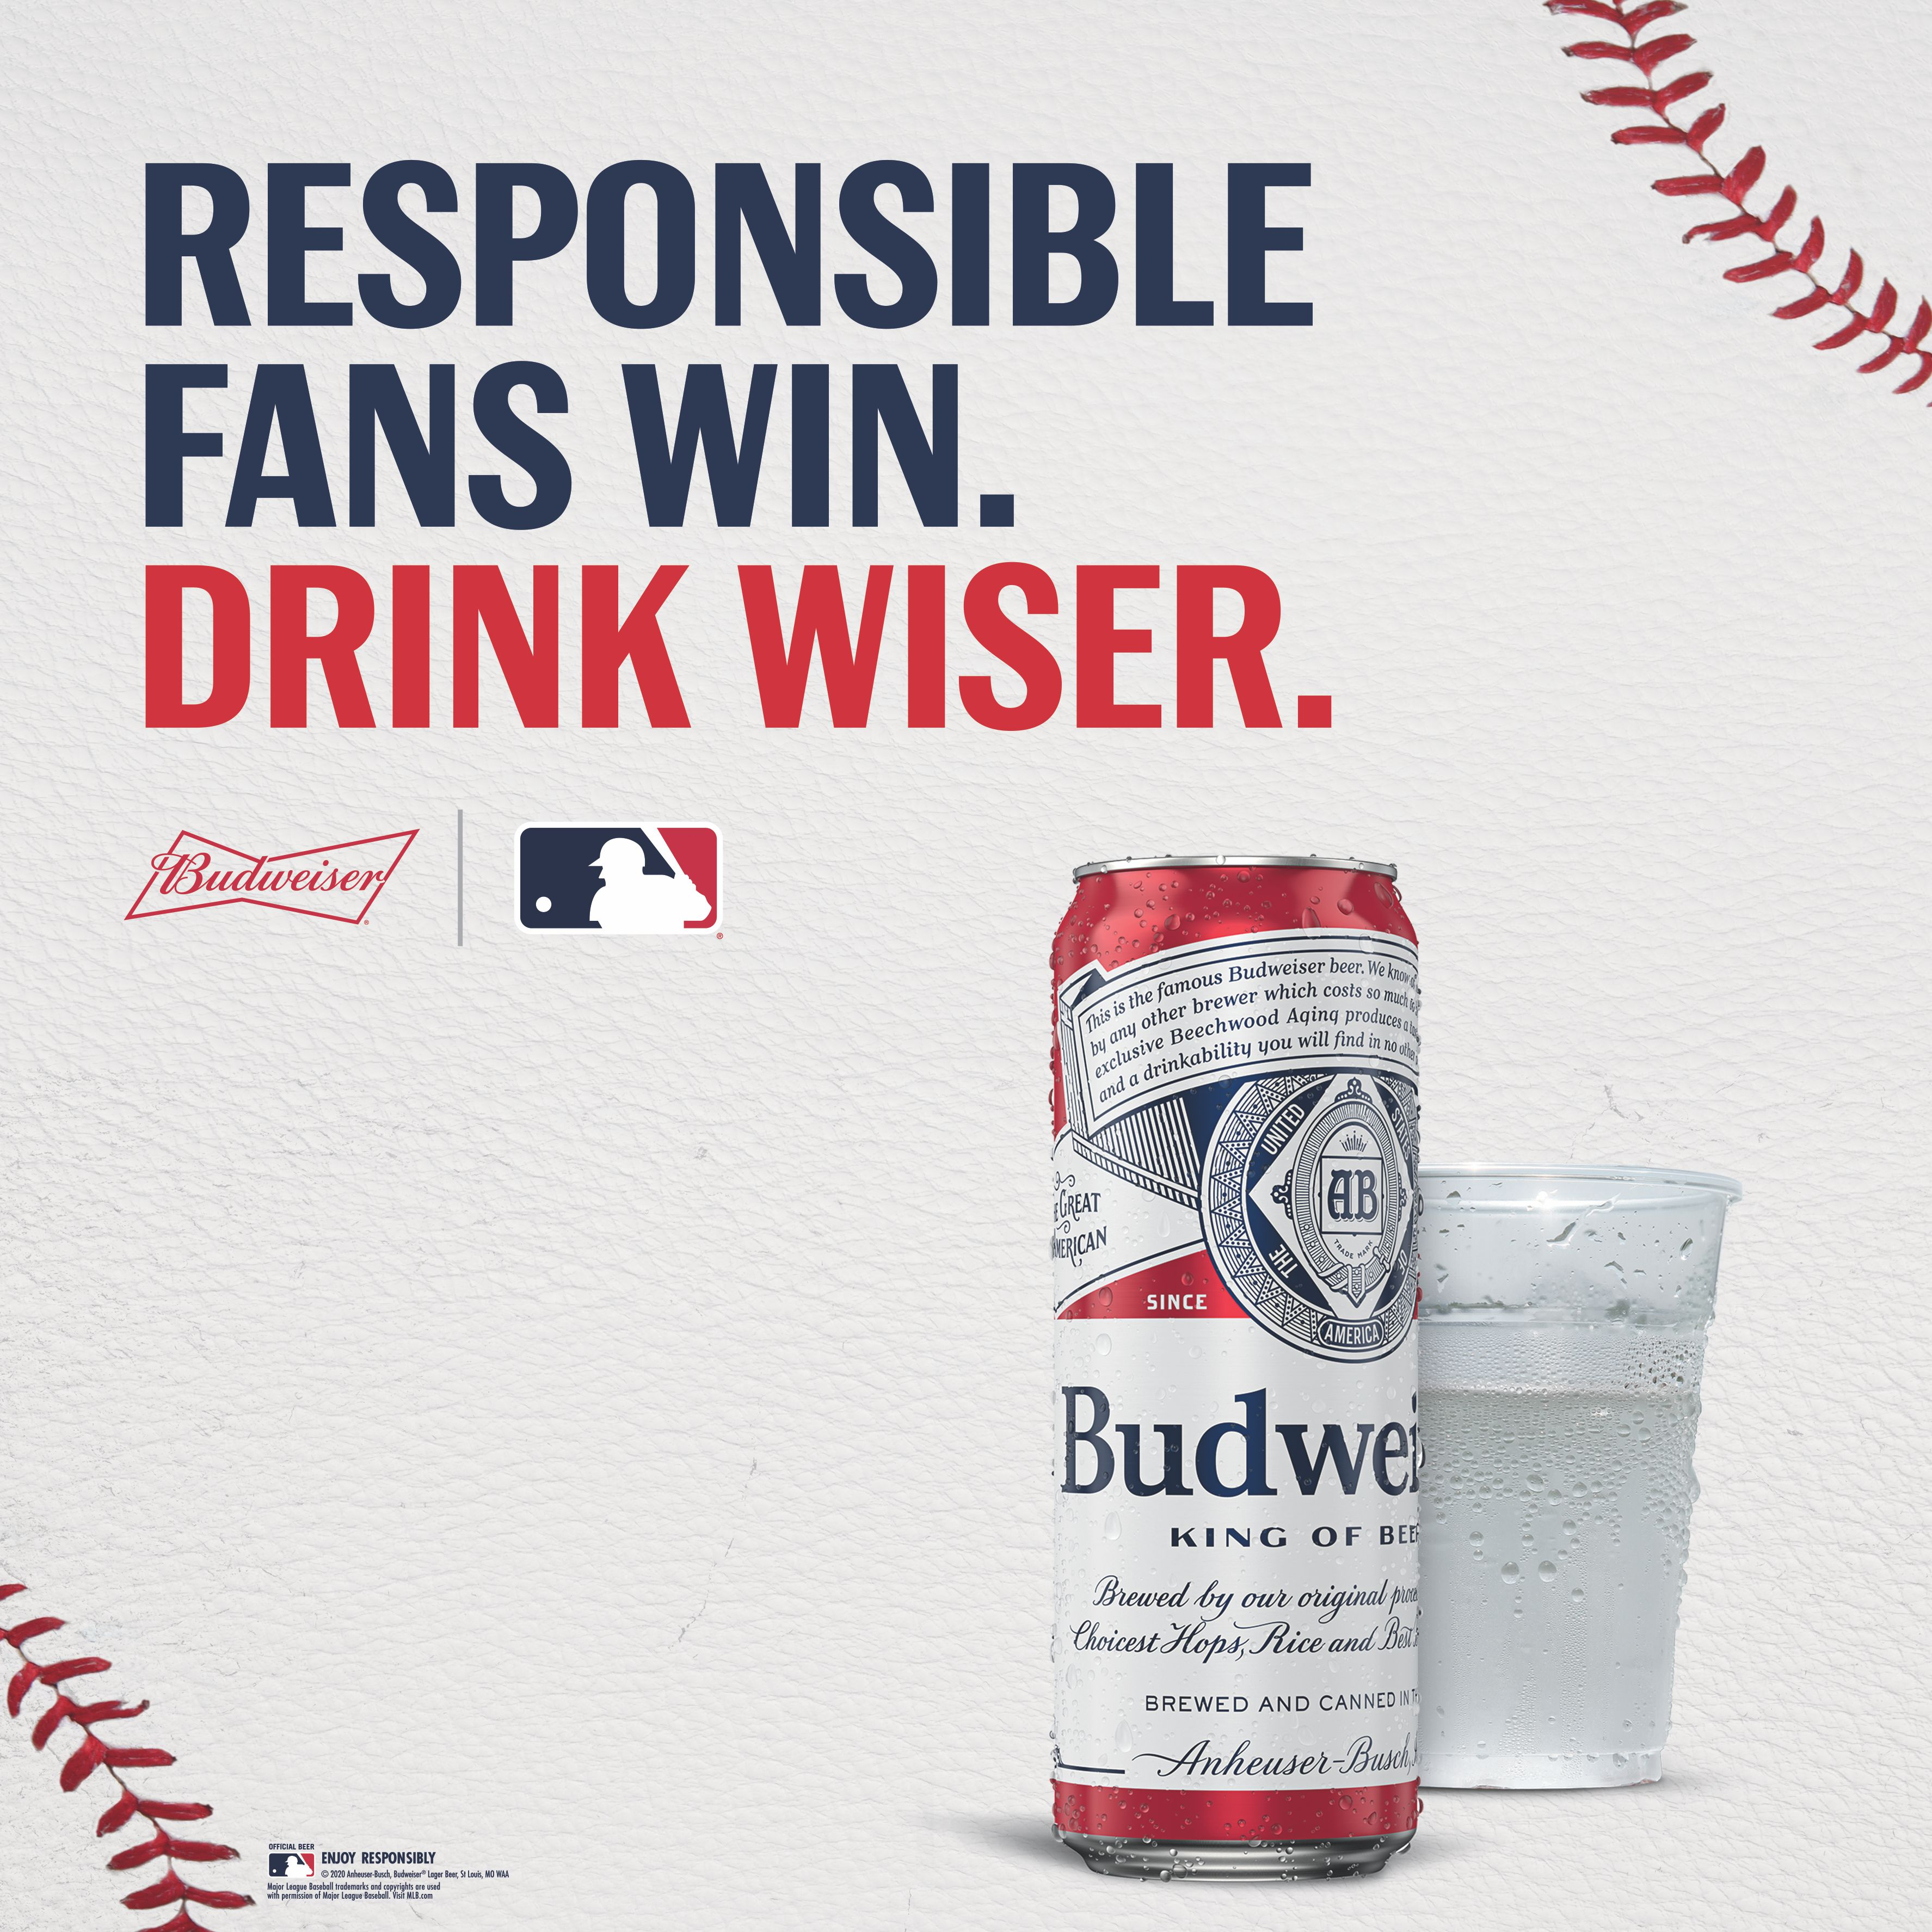 Budweiser beer with the caption responsible fans win. Dink wiser.